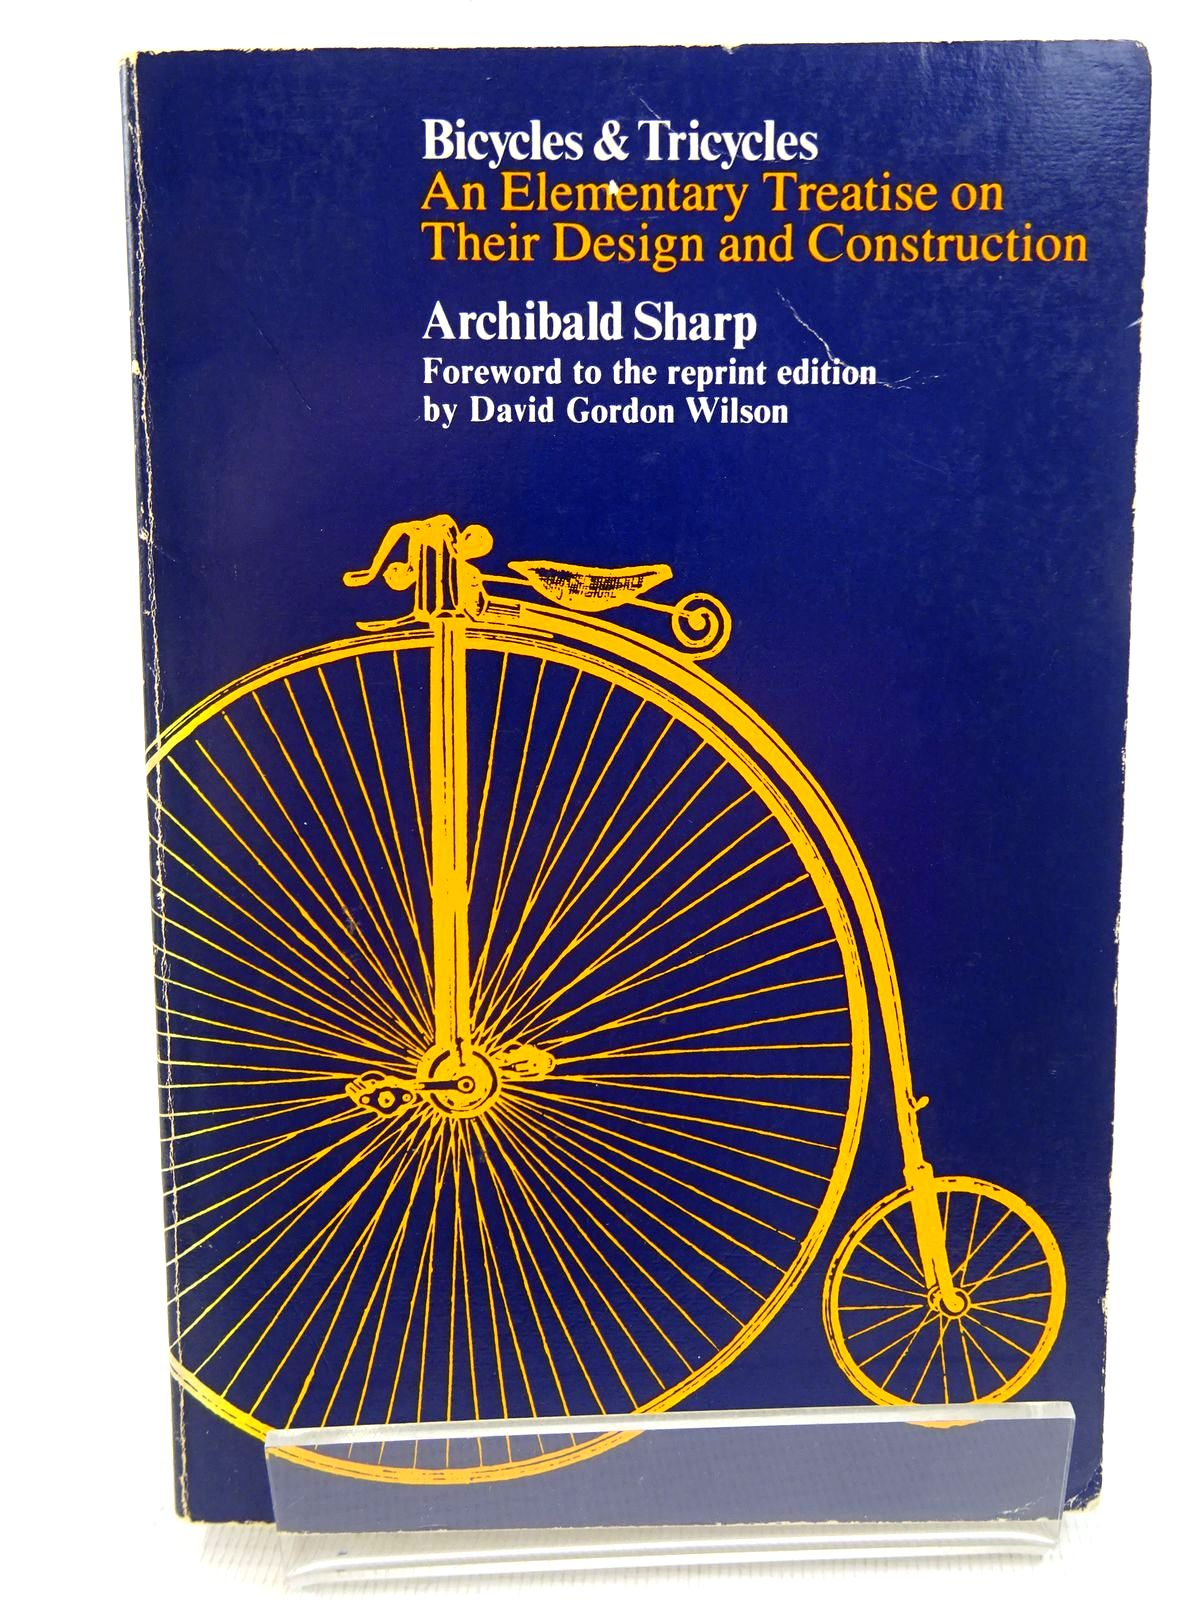 Photo of BICYCLES & TRICYCLES: AN ELEMENTARY TREATISE ON THEIR DESIGN AND CONSTRUCTION written by Sharp, Archibald published by M.I.T. Press (STOCK CODE: 1817055)  for sale by Stella & Rose's Books